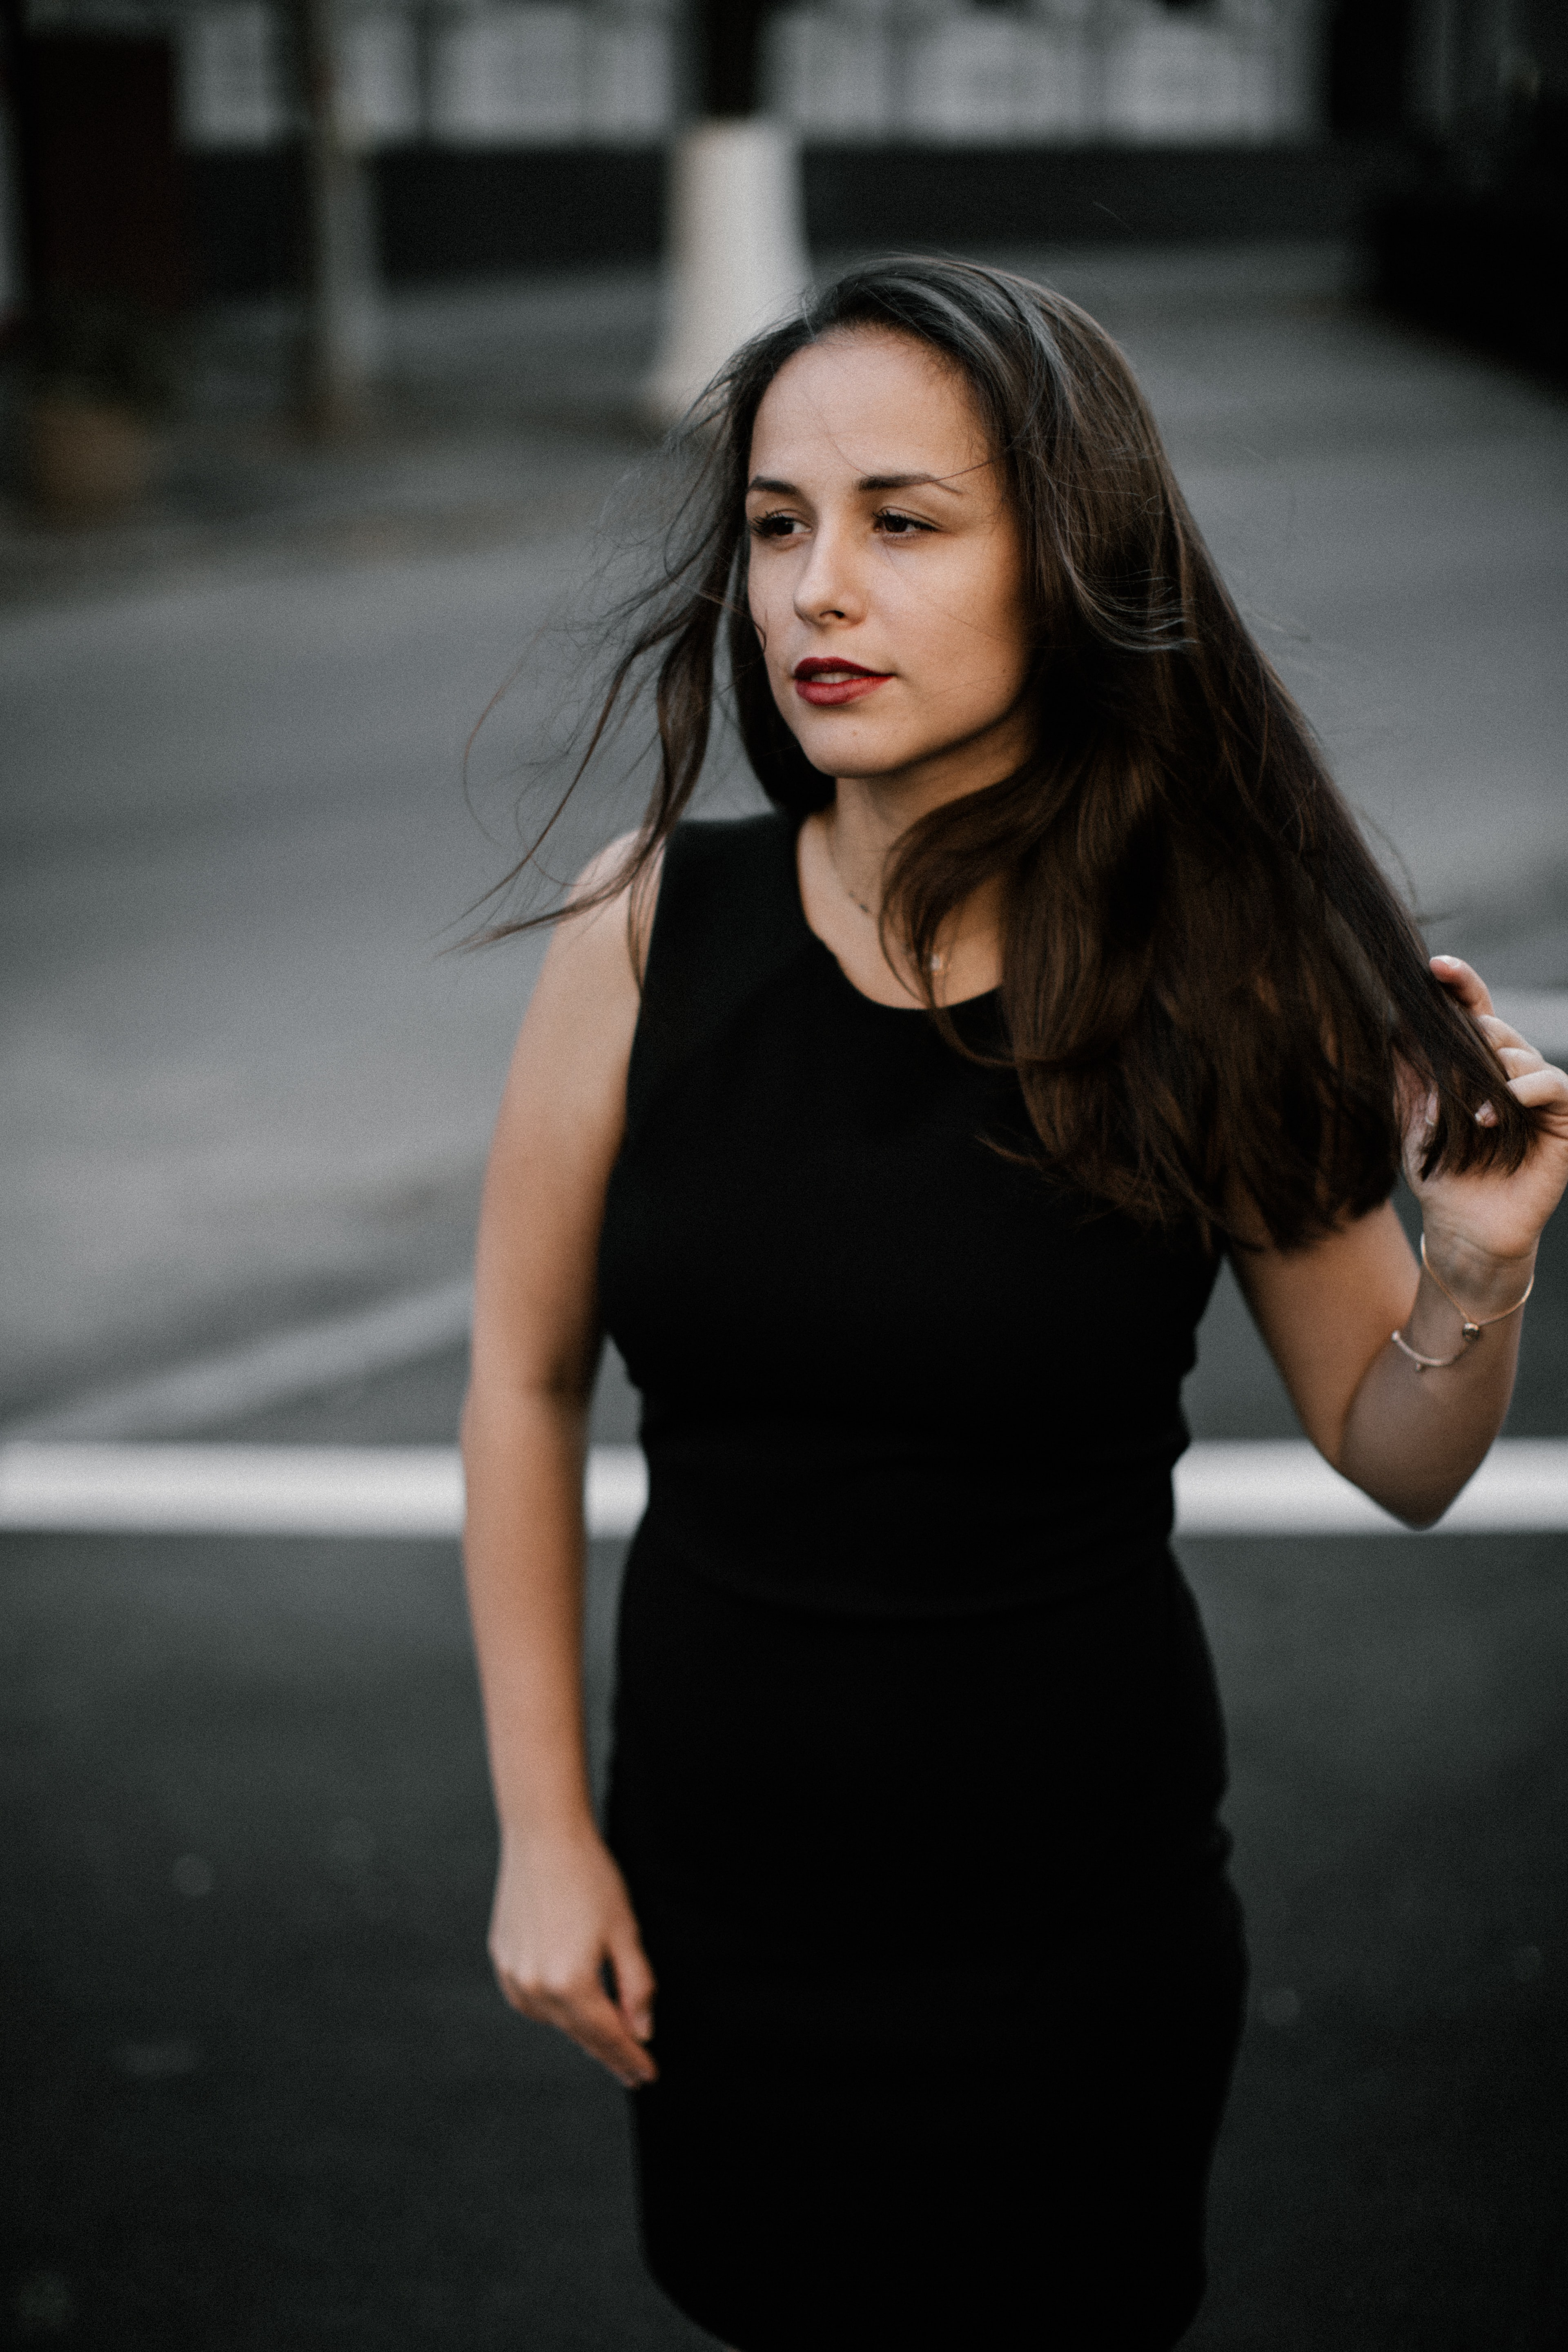 focus photo of woman in black sleeveless dress walks on road